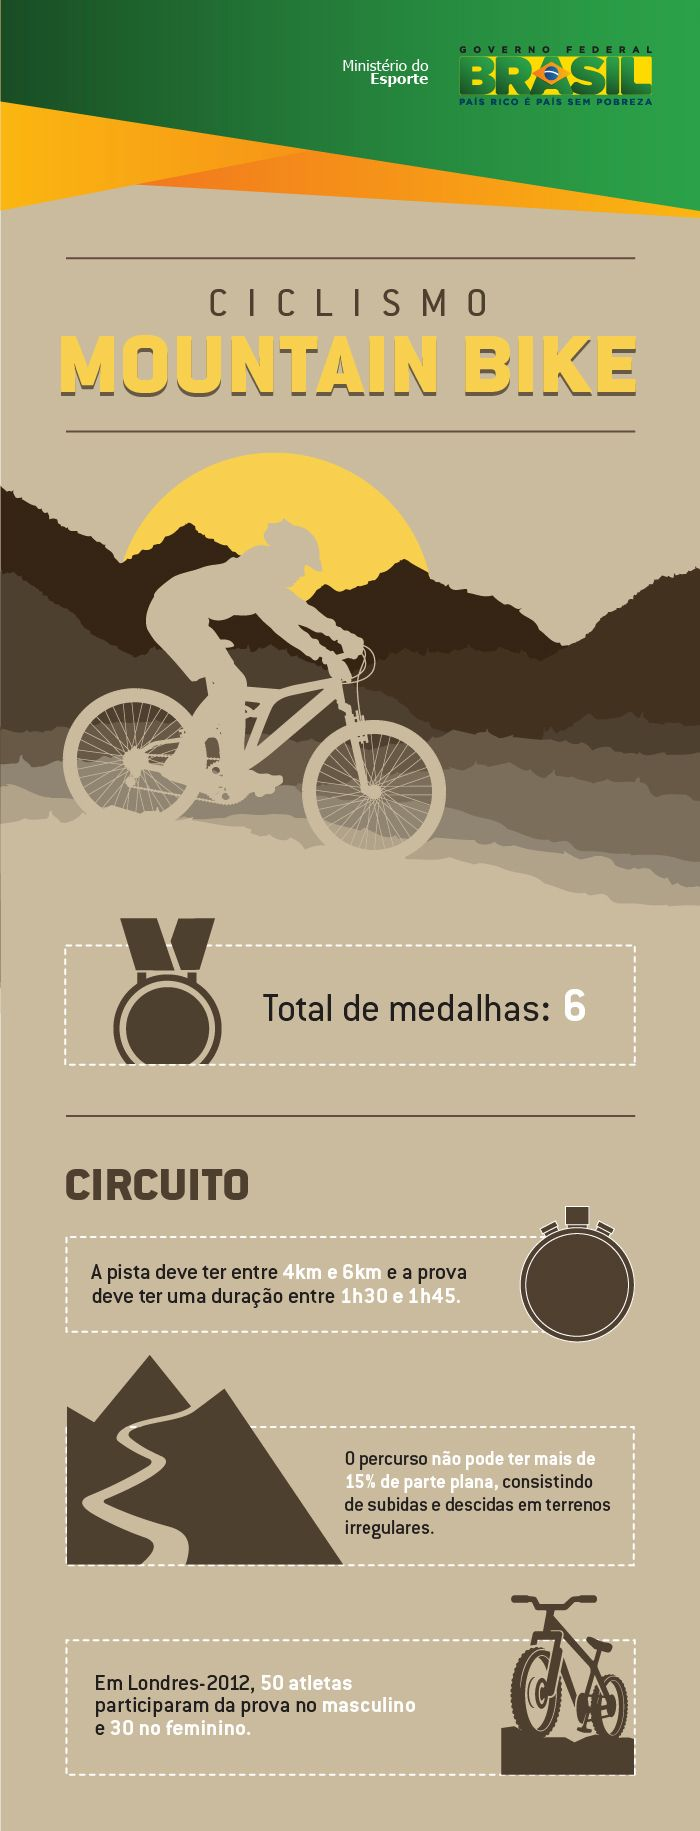 Ciclismo Mountain Bike